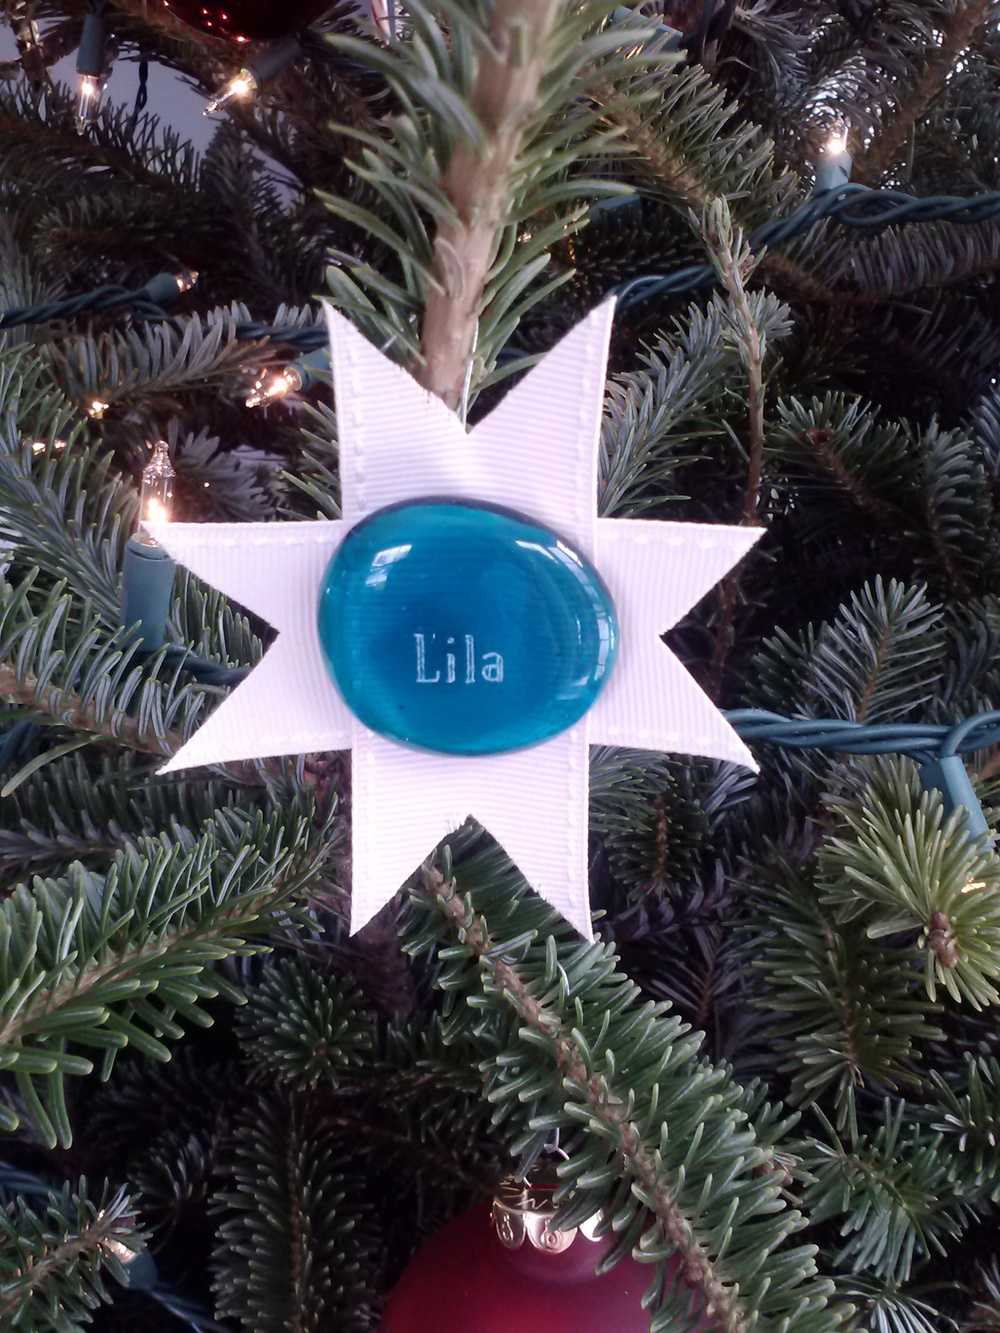 Lila stone on the Bricker Christmas Tree